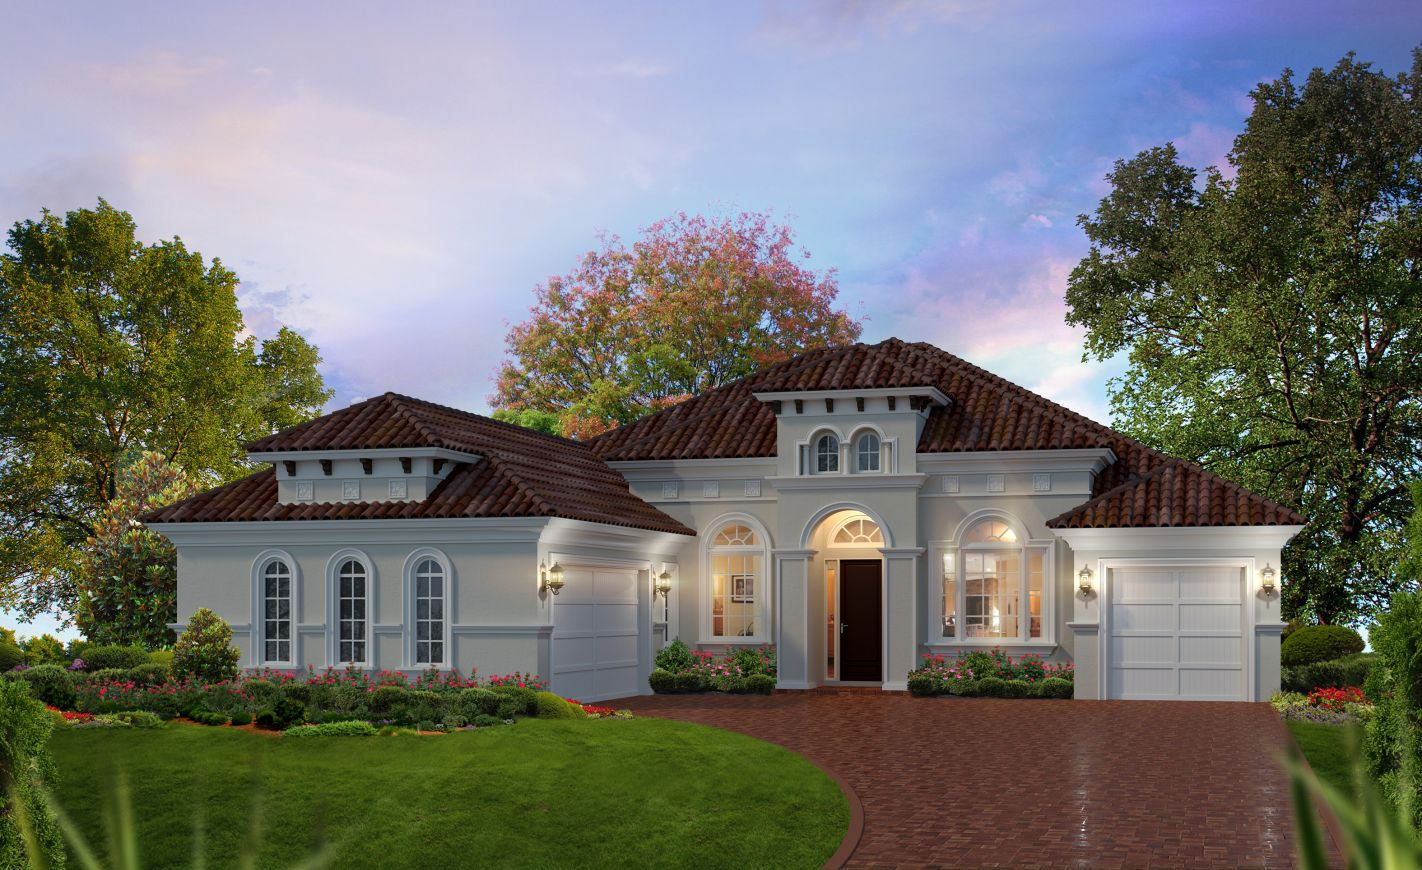 Palm Coast Homes for Sale - The Egret VII at The Conservatory